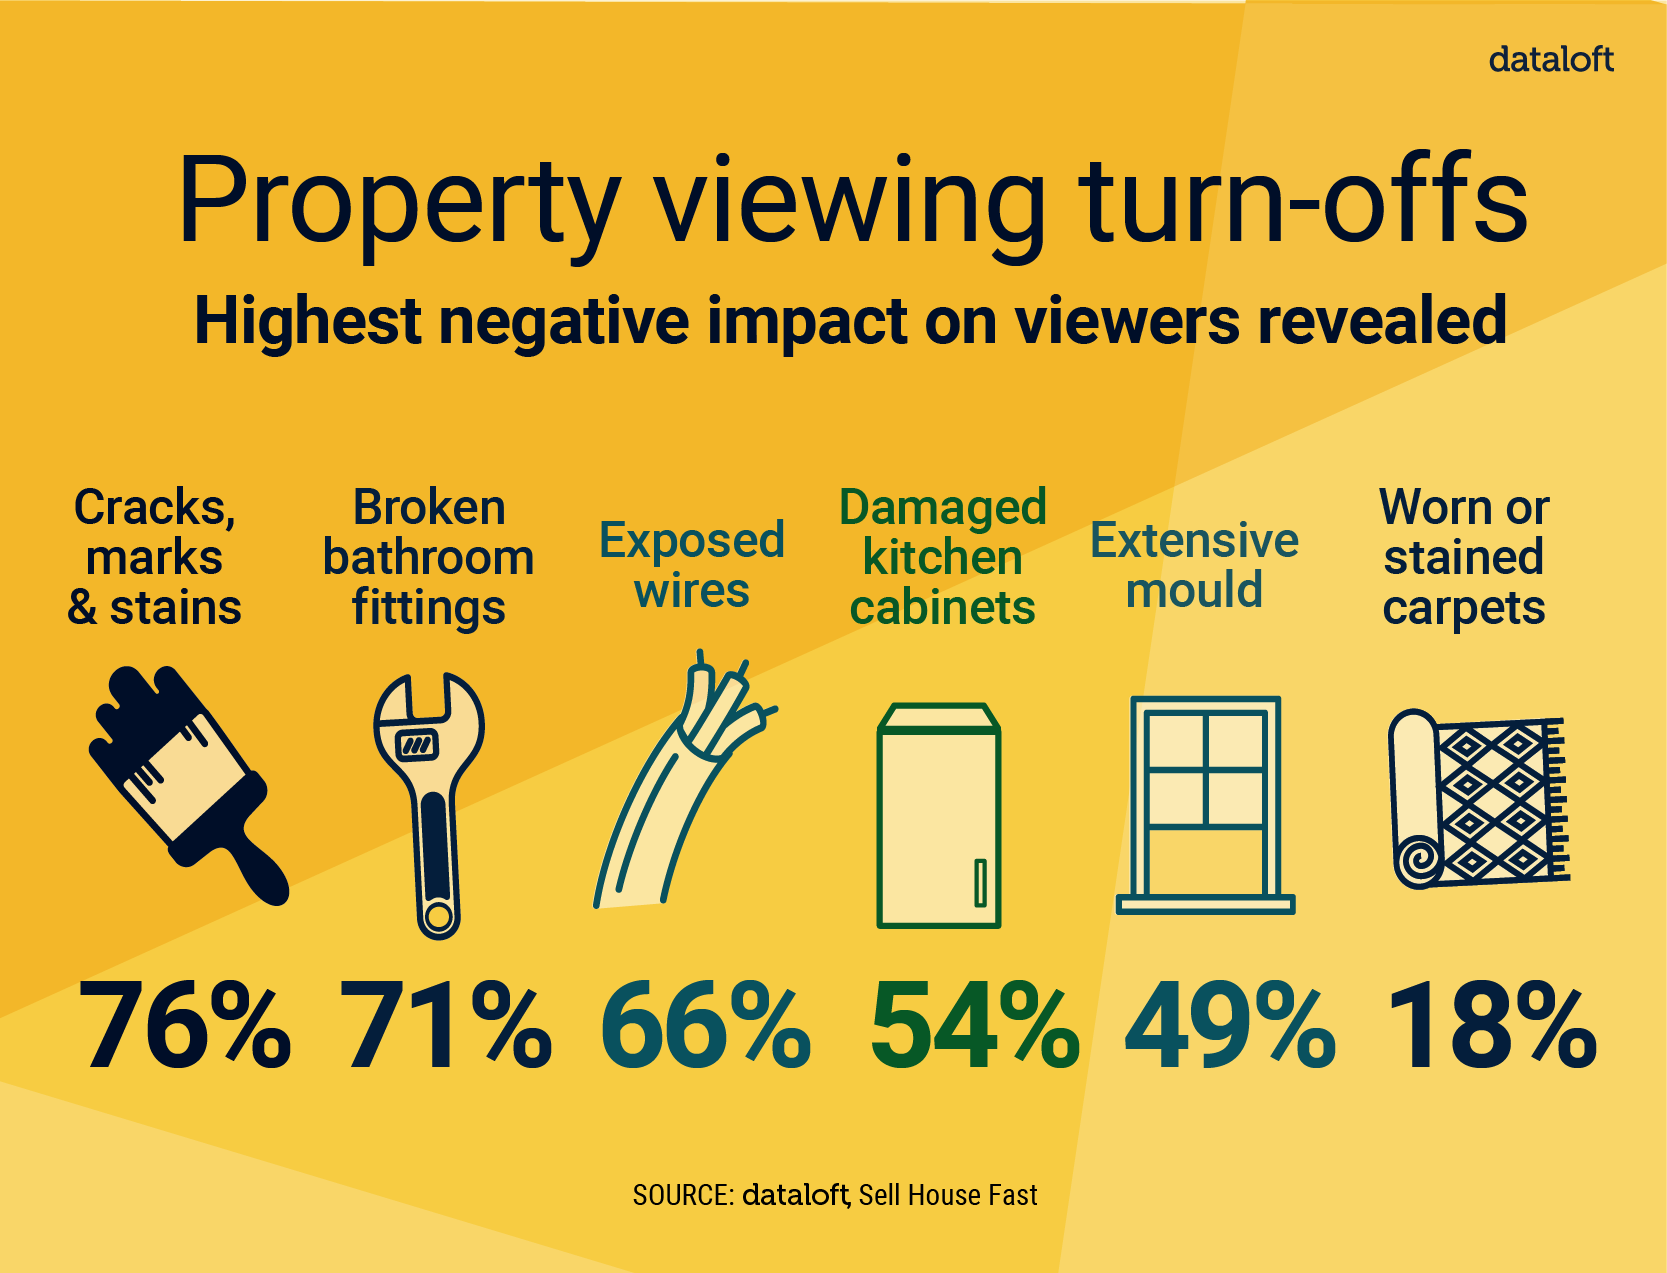 141 Property turn offs 01 - PROPERTY VIEWING TURN-OFFS